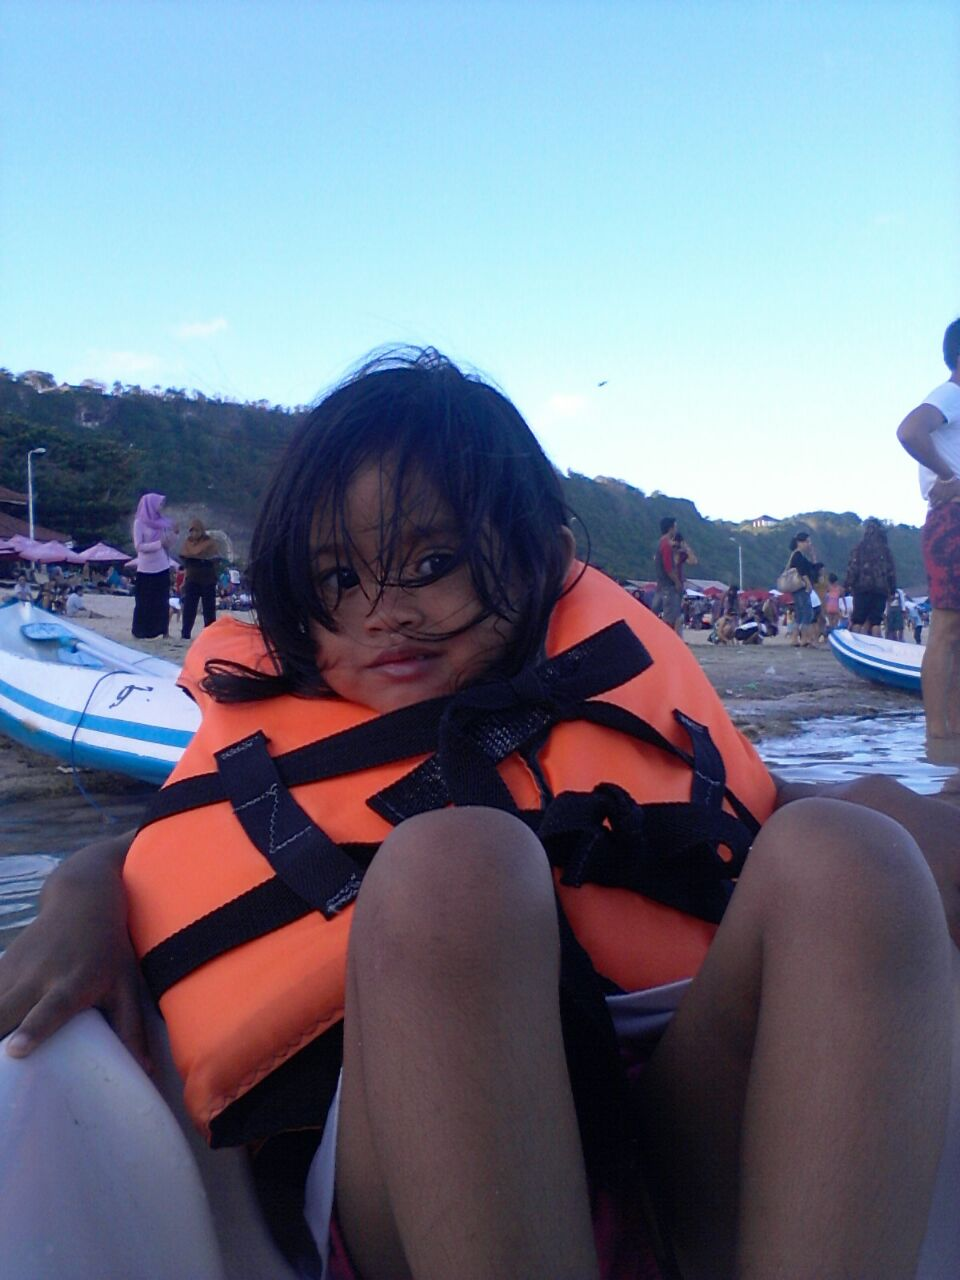 As I write, Rusnati's grandaughter, Key, is     in Bali on holiday with her folks!